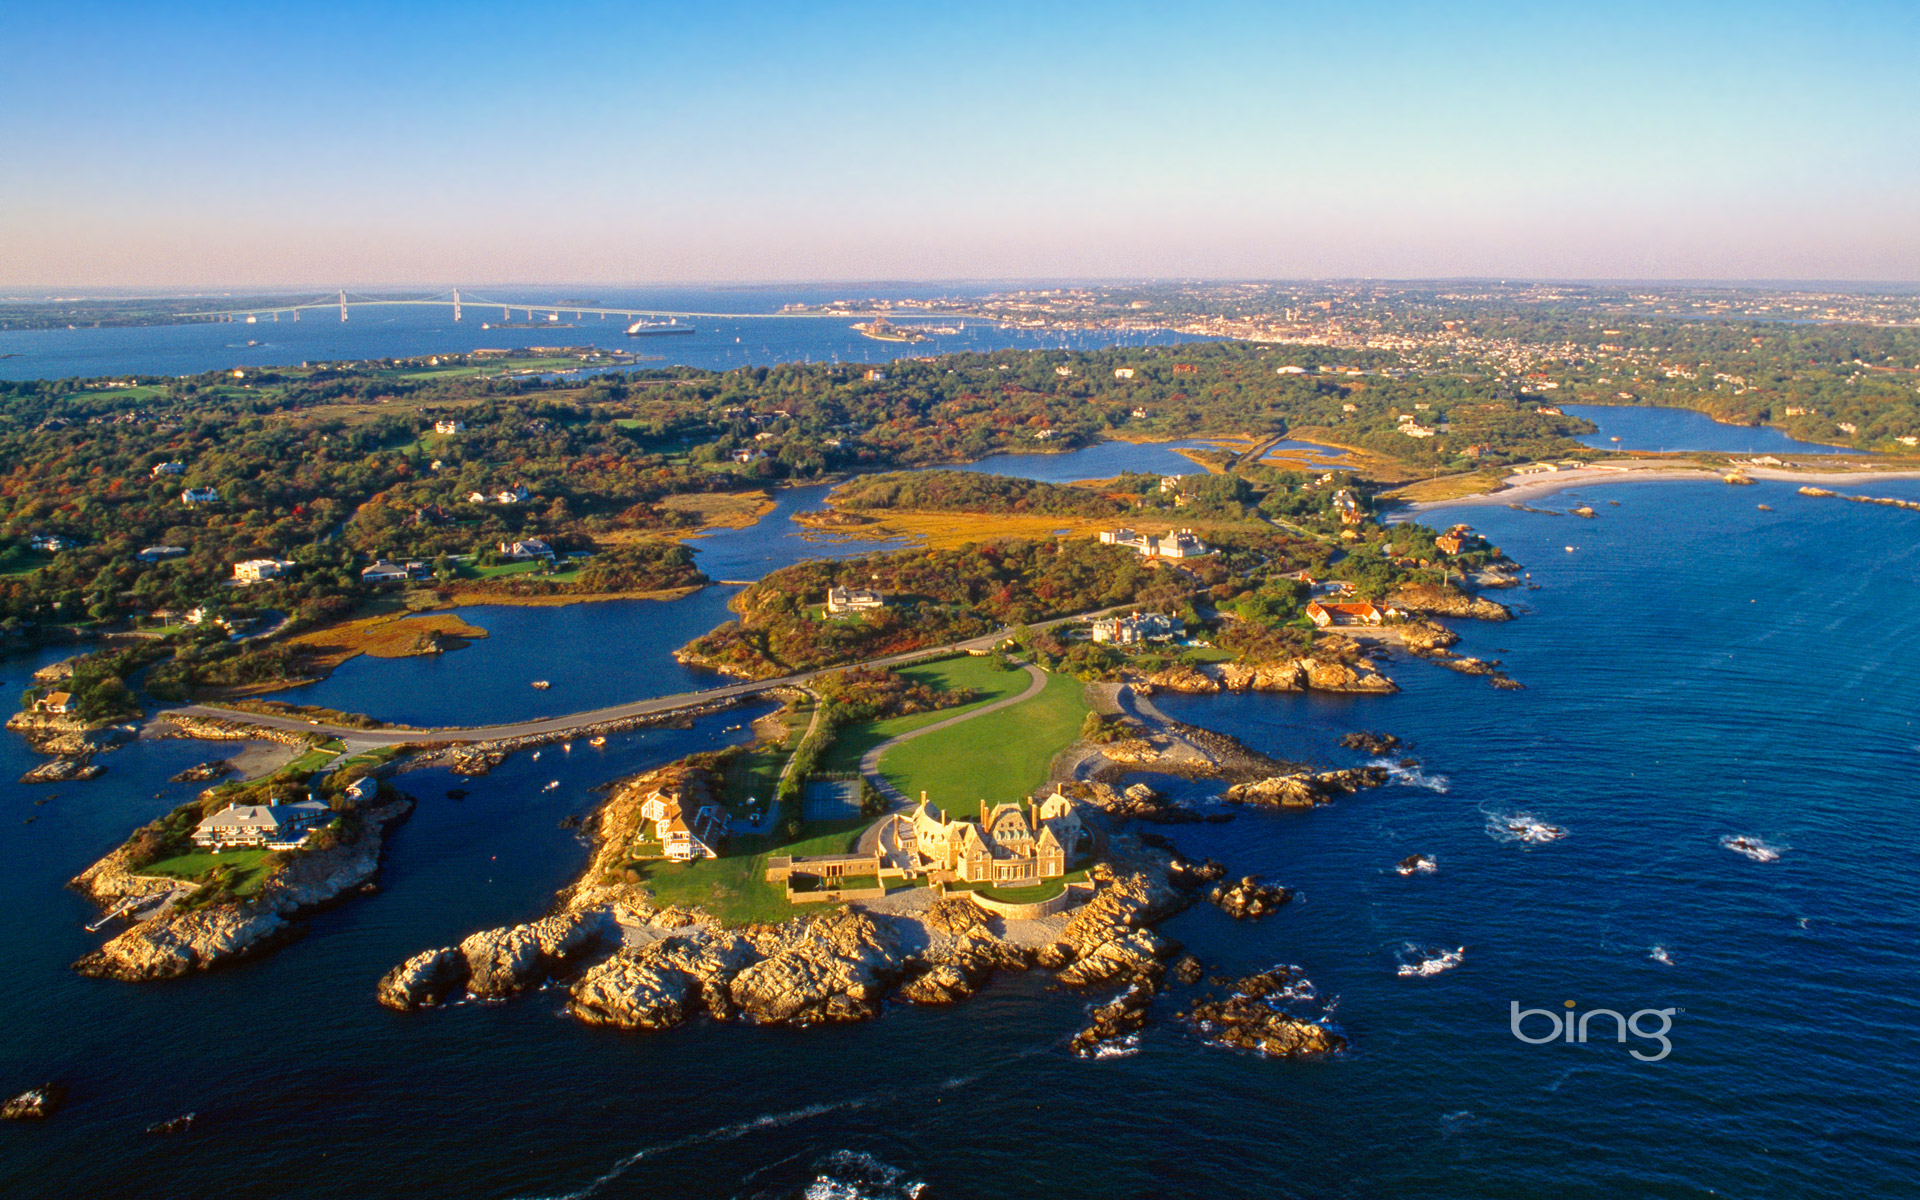 Aerial view of Ocean Drive in Newport, Rhode Island